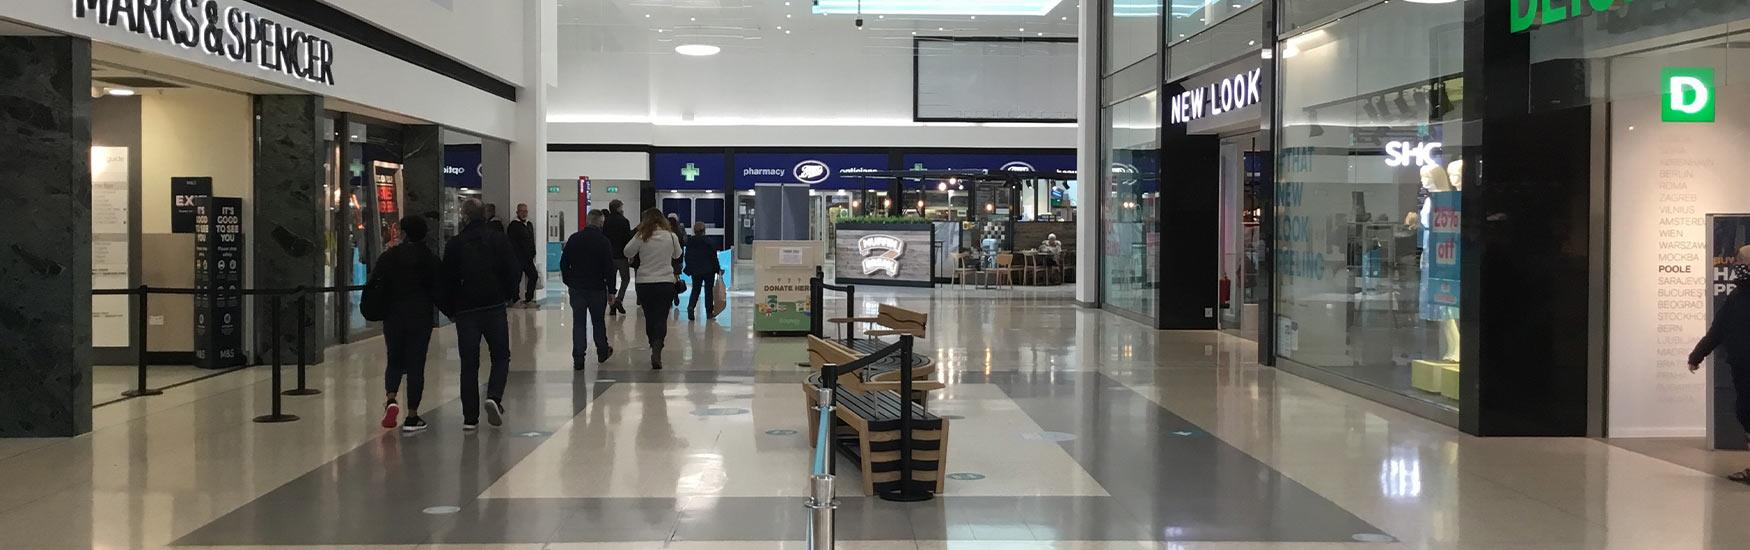 Inside the Dolphin shopping centre in Poole